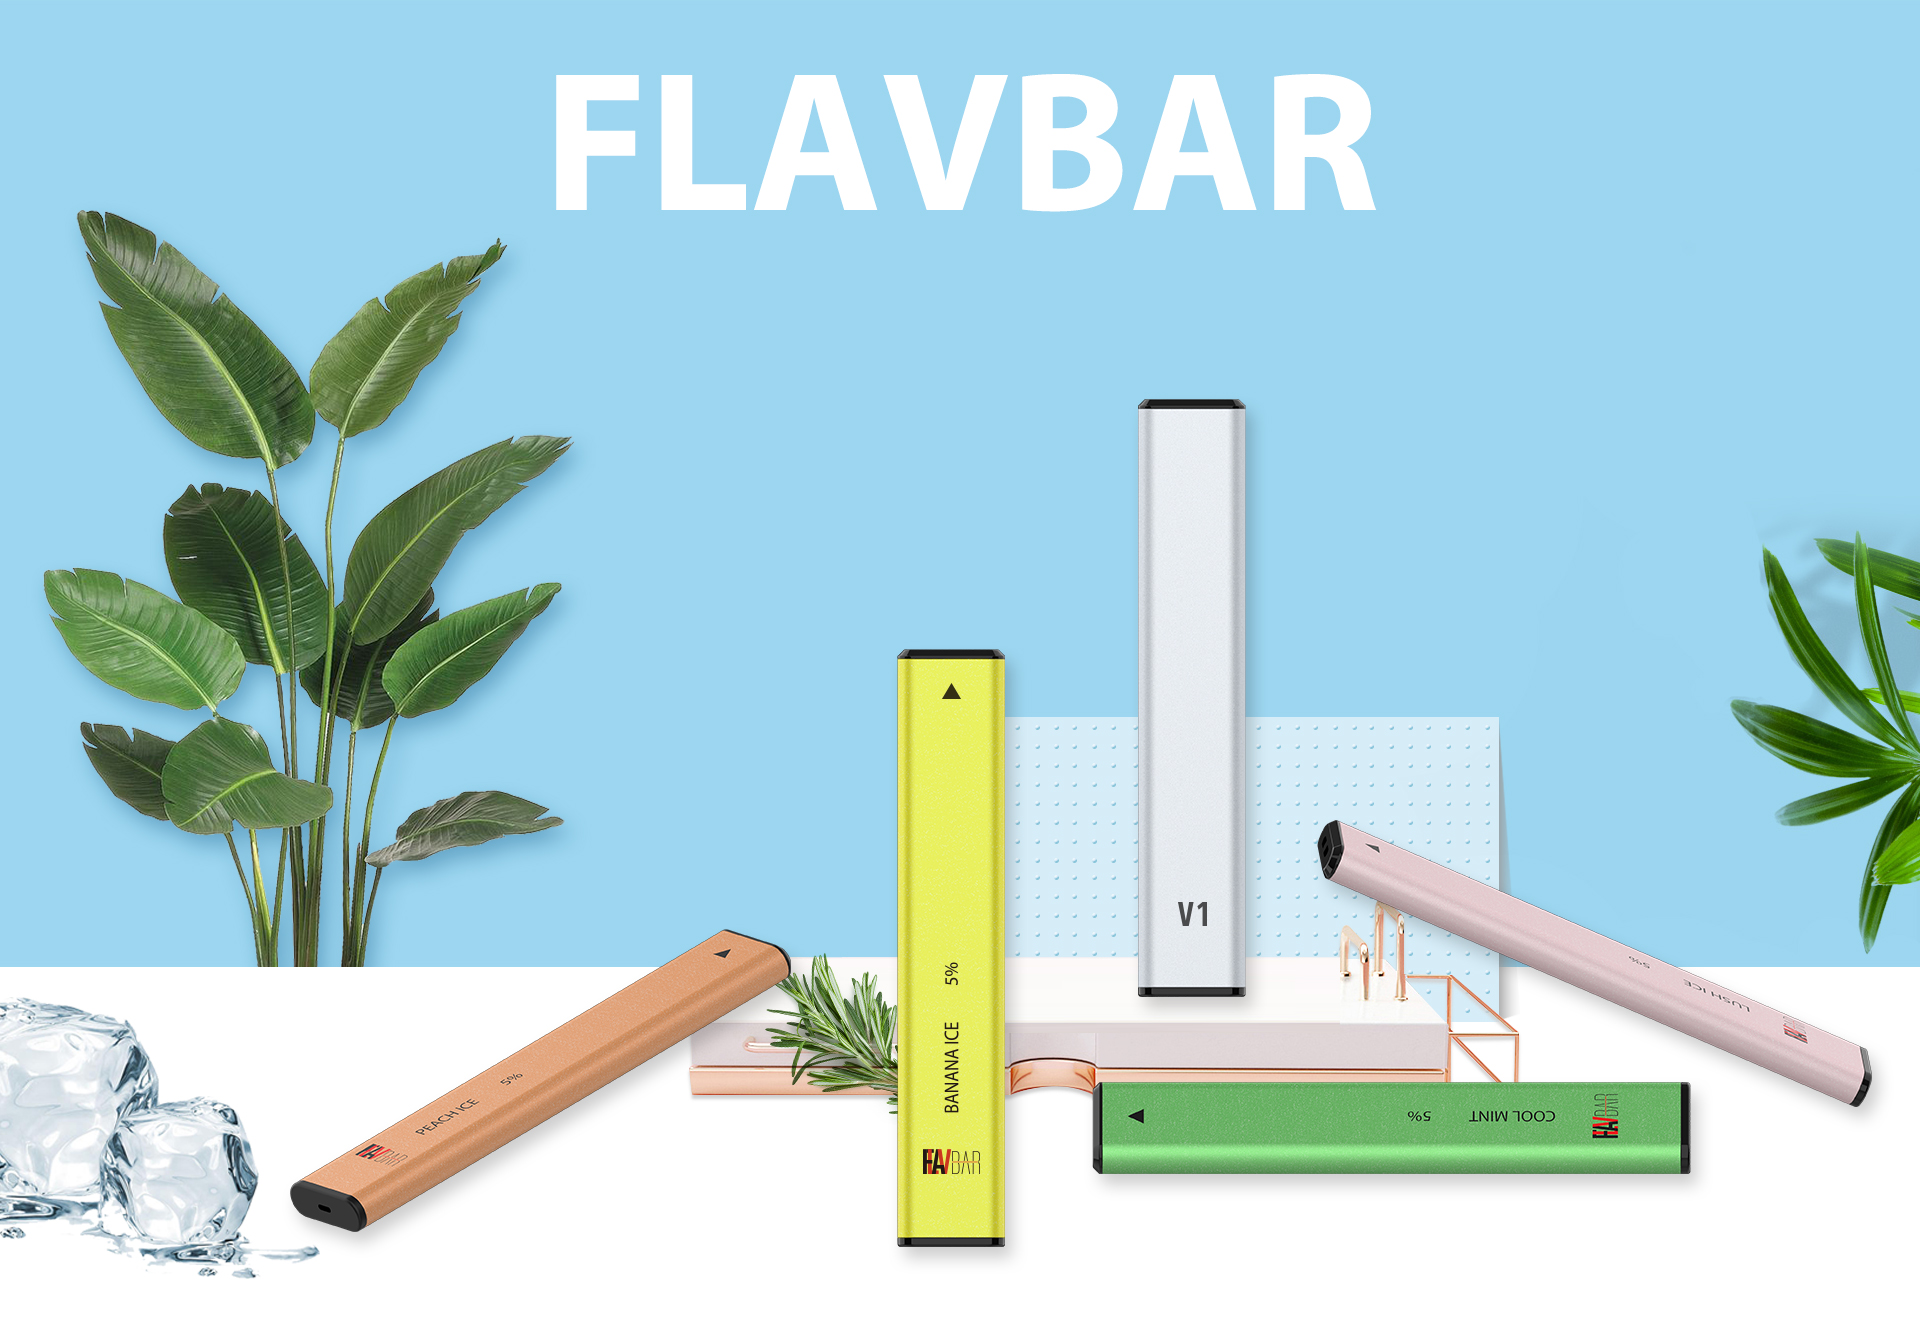 Flavbar v1 pod disposable device is comes with ten flavors.